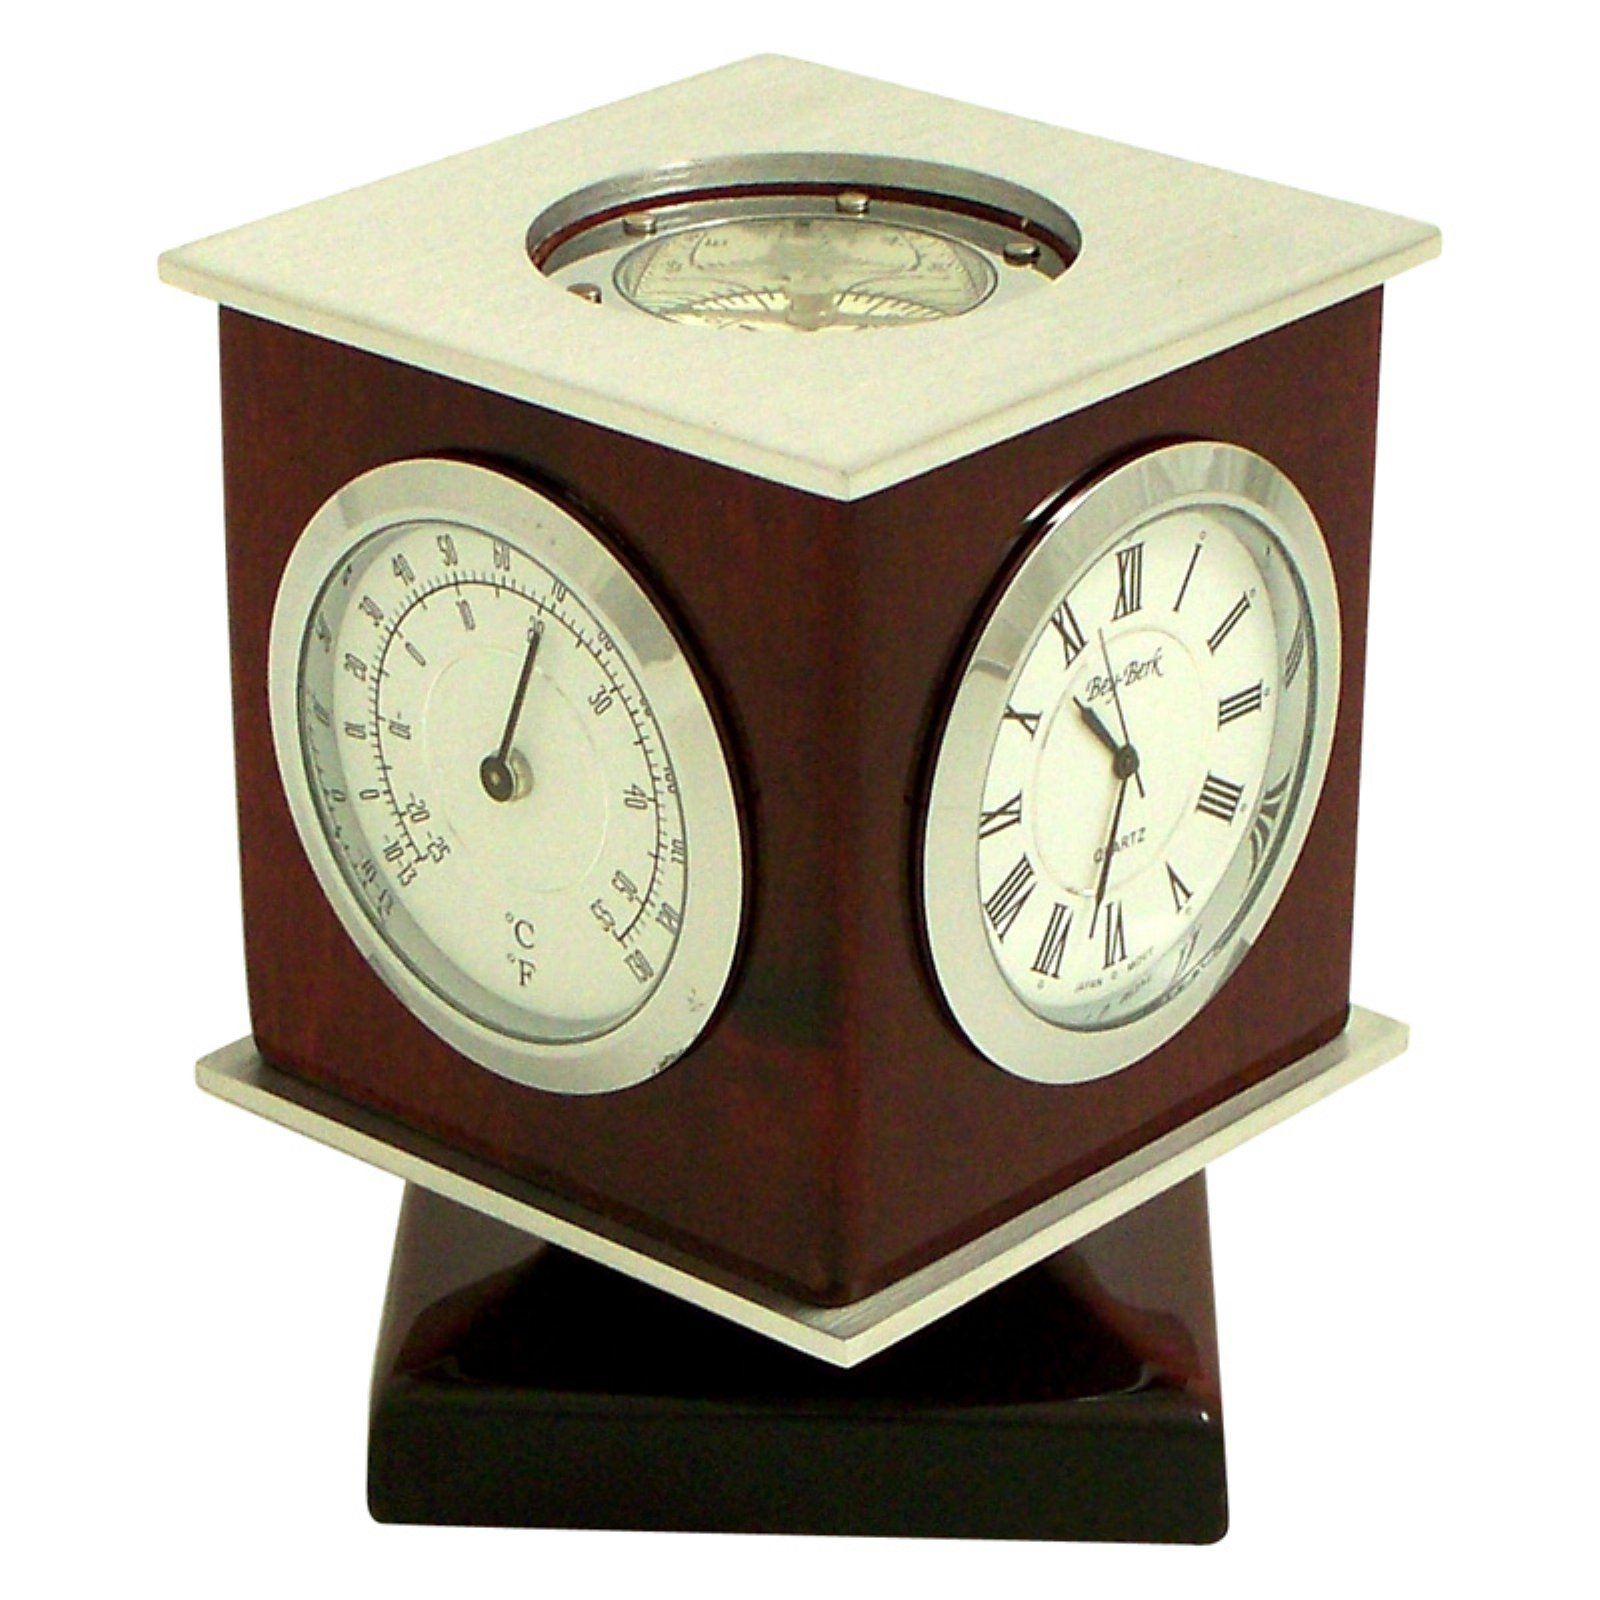 Bey-Berk International Revolving Cube Weather Station & Compass Desktop Clock